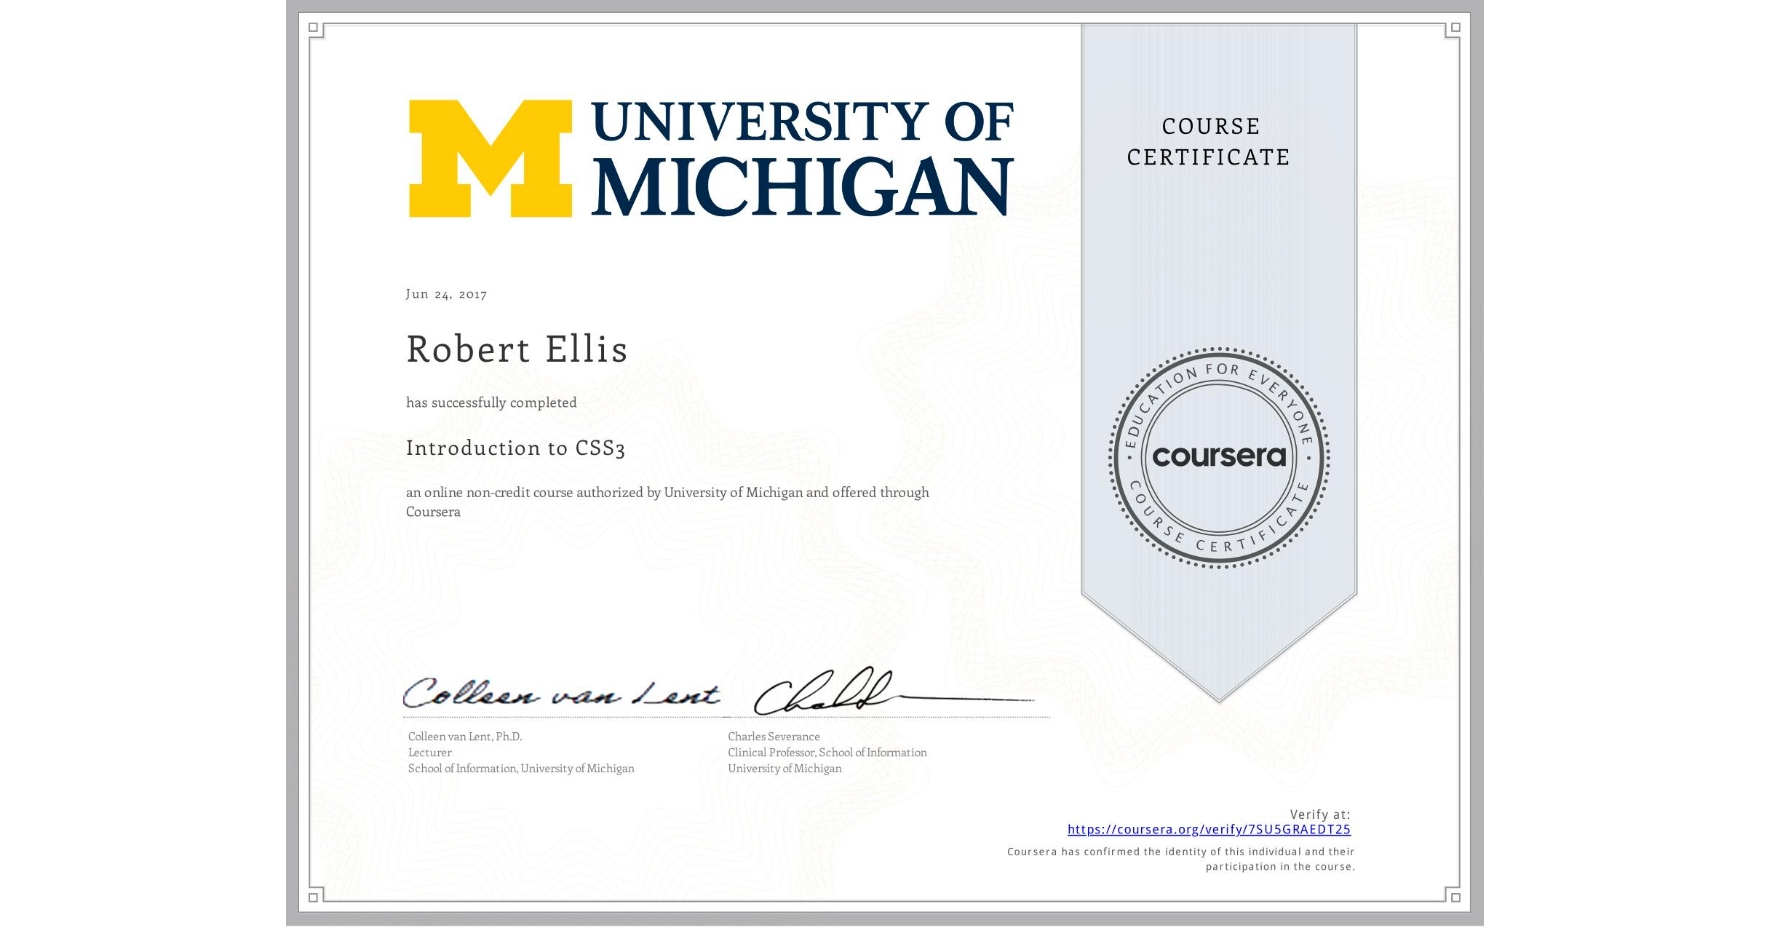 View certificate for Robert Ellis, Introduction to CSS3, an online non-credit course authorized by University of Michigan and offered through Coursera